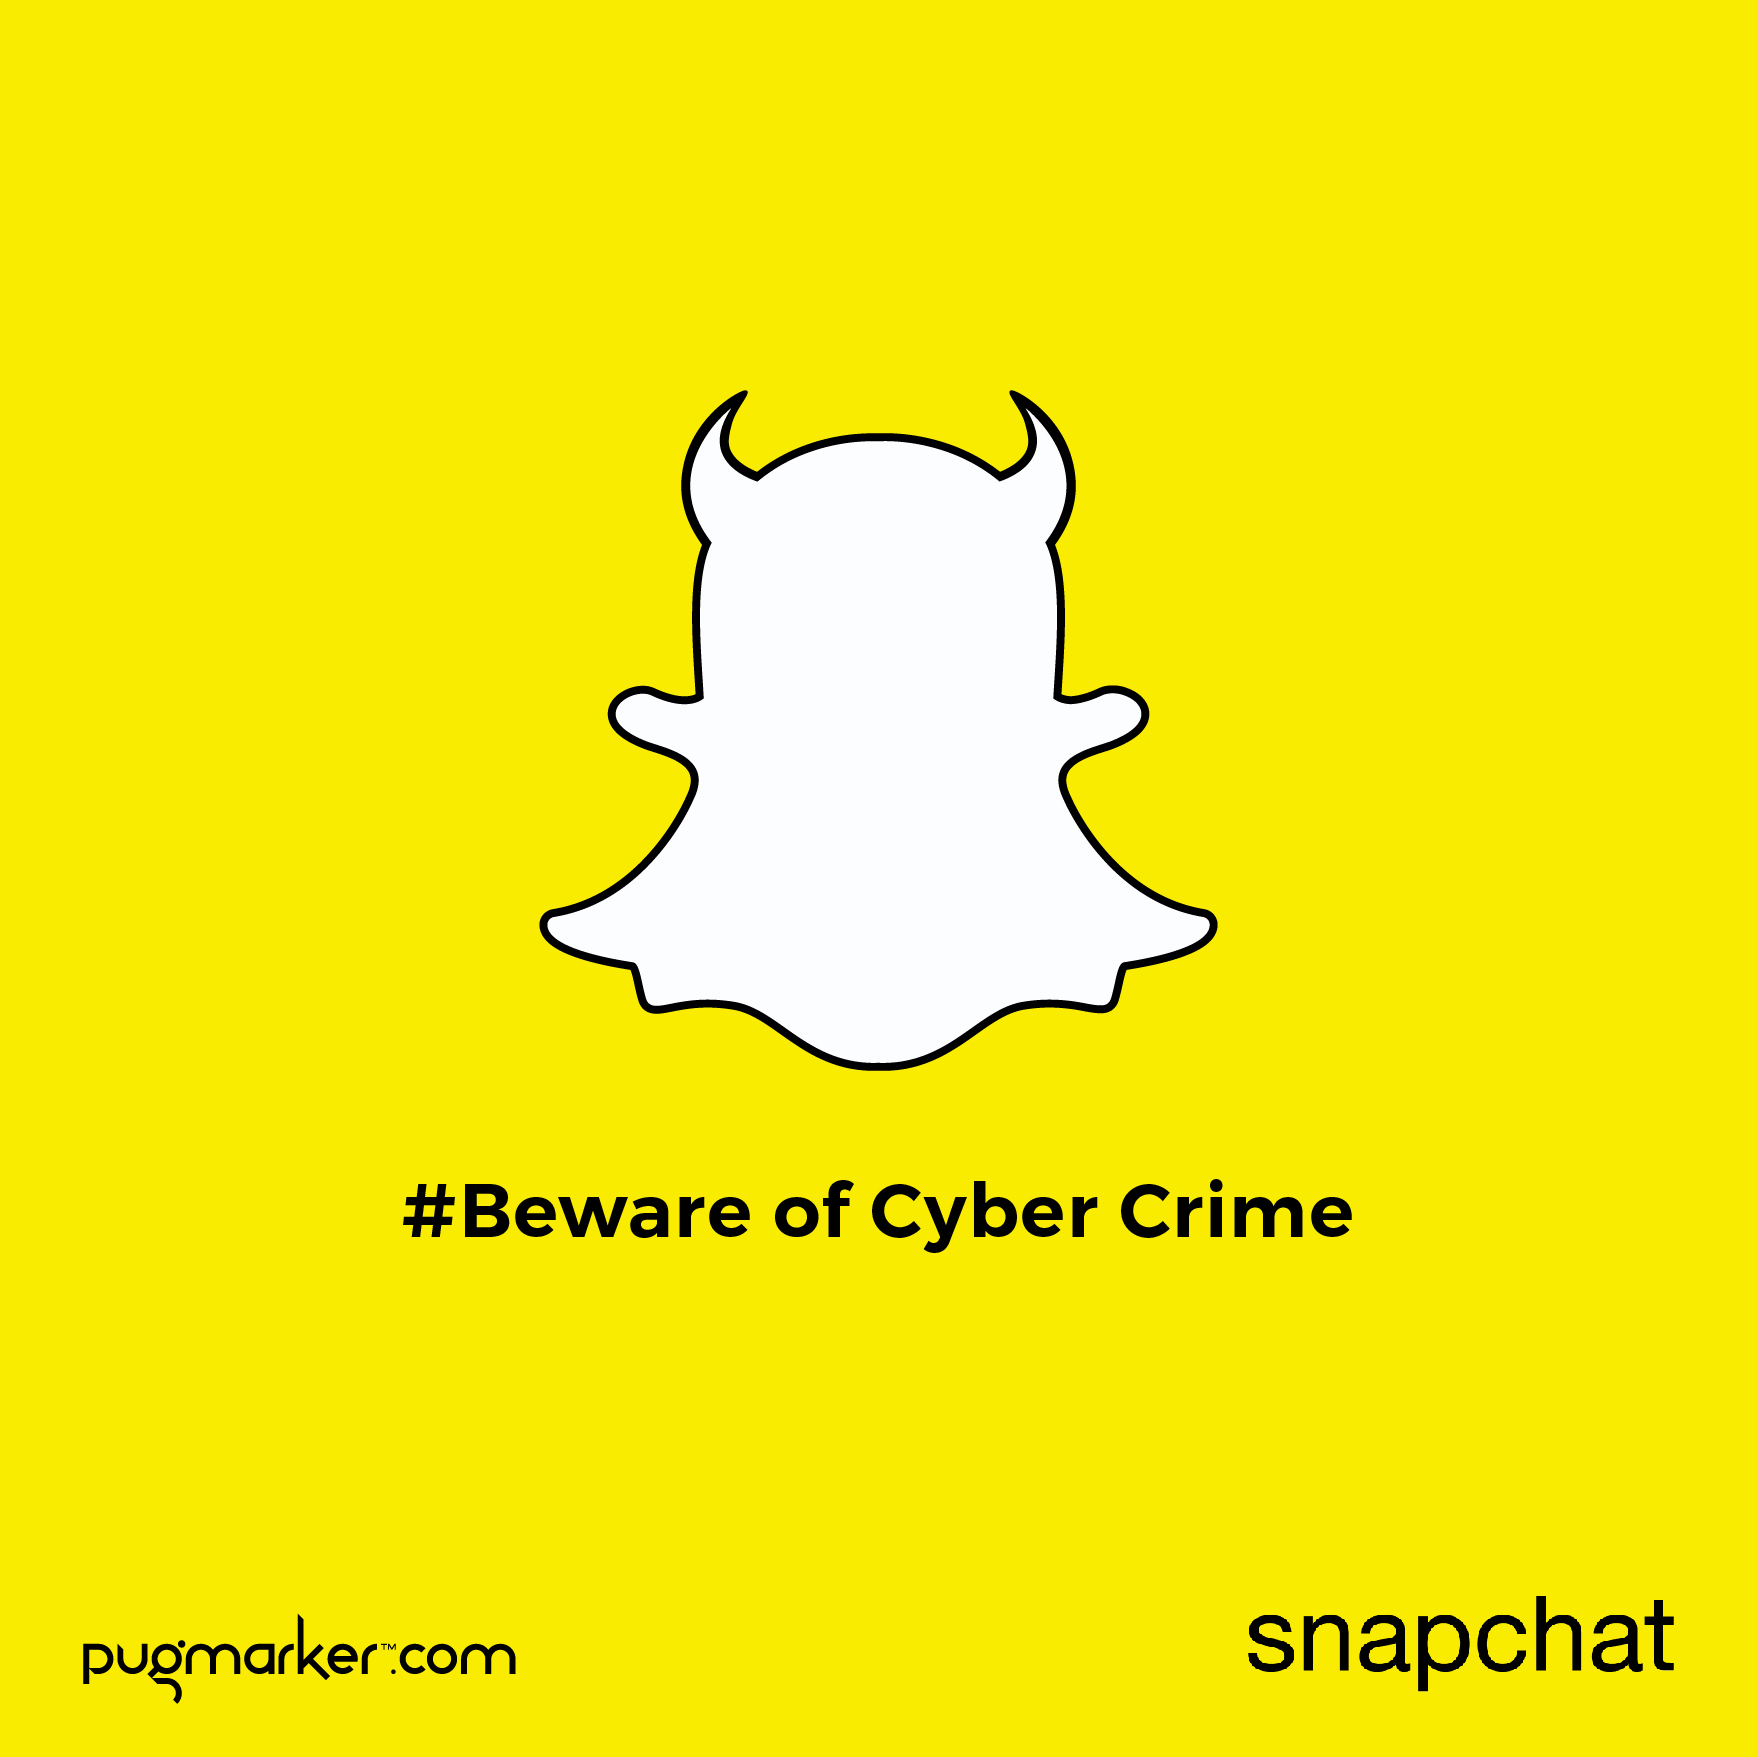 Snapchat - Beware of Cyber Crime